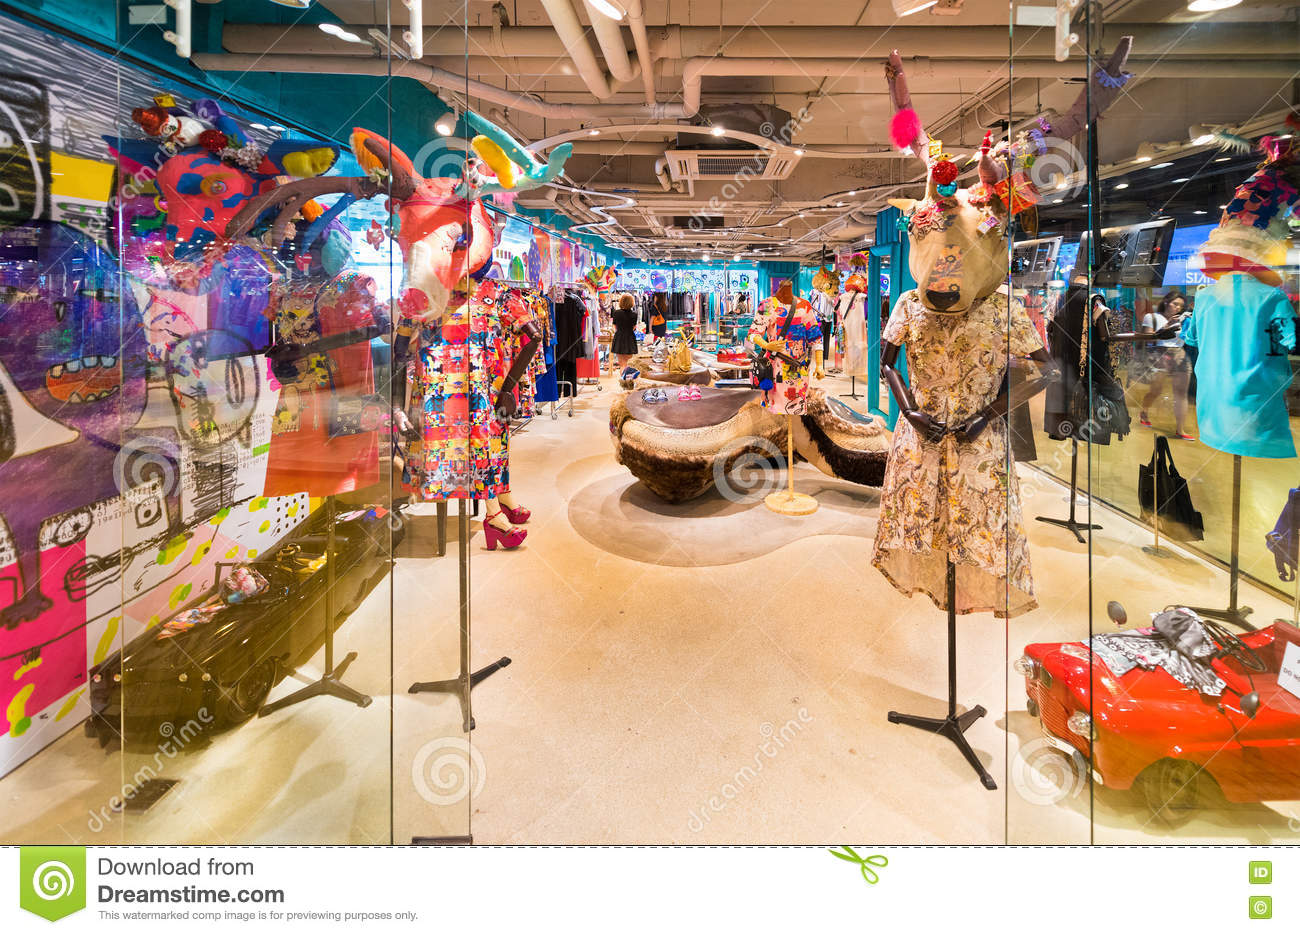 babb7b4352 BANGKOK - MARCH 17, 2016: A view at a ladies clothing store with unusual  mannequins having deer heads. It is located in the Siam Center (built in  1973), ...